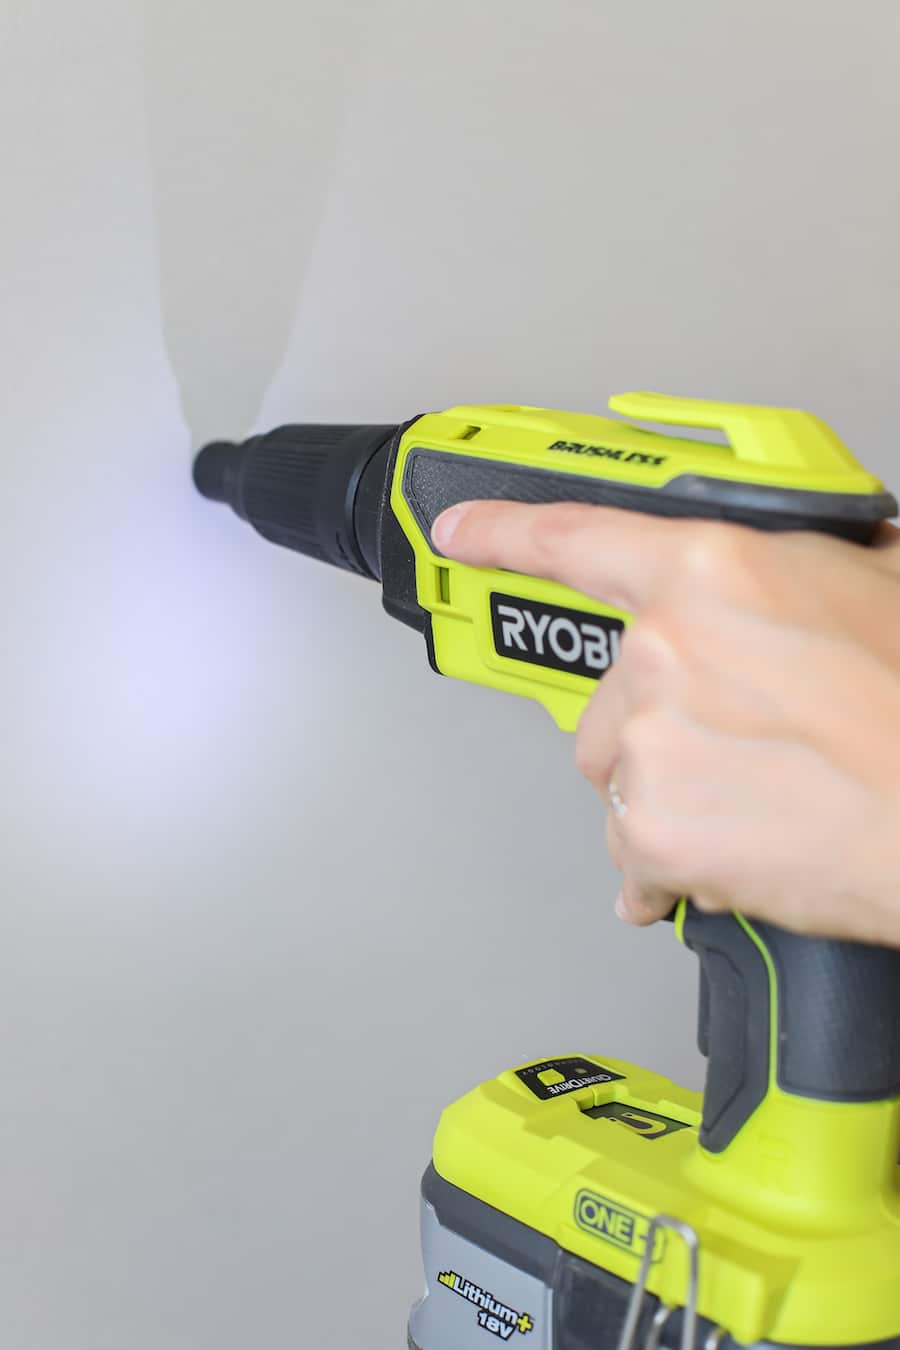 RYOBI-drywall-screw-gun-review